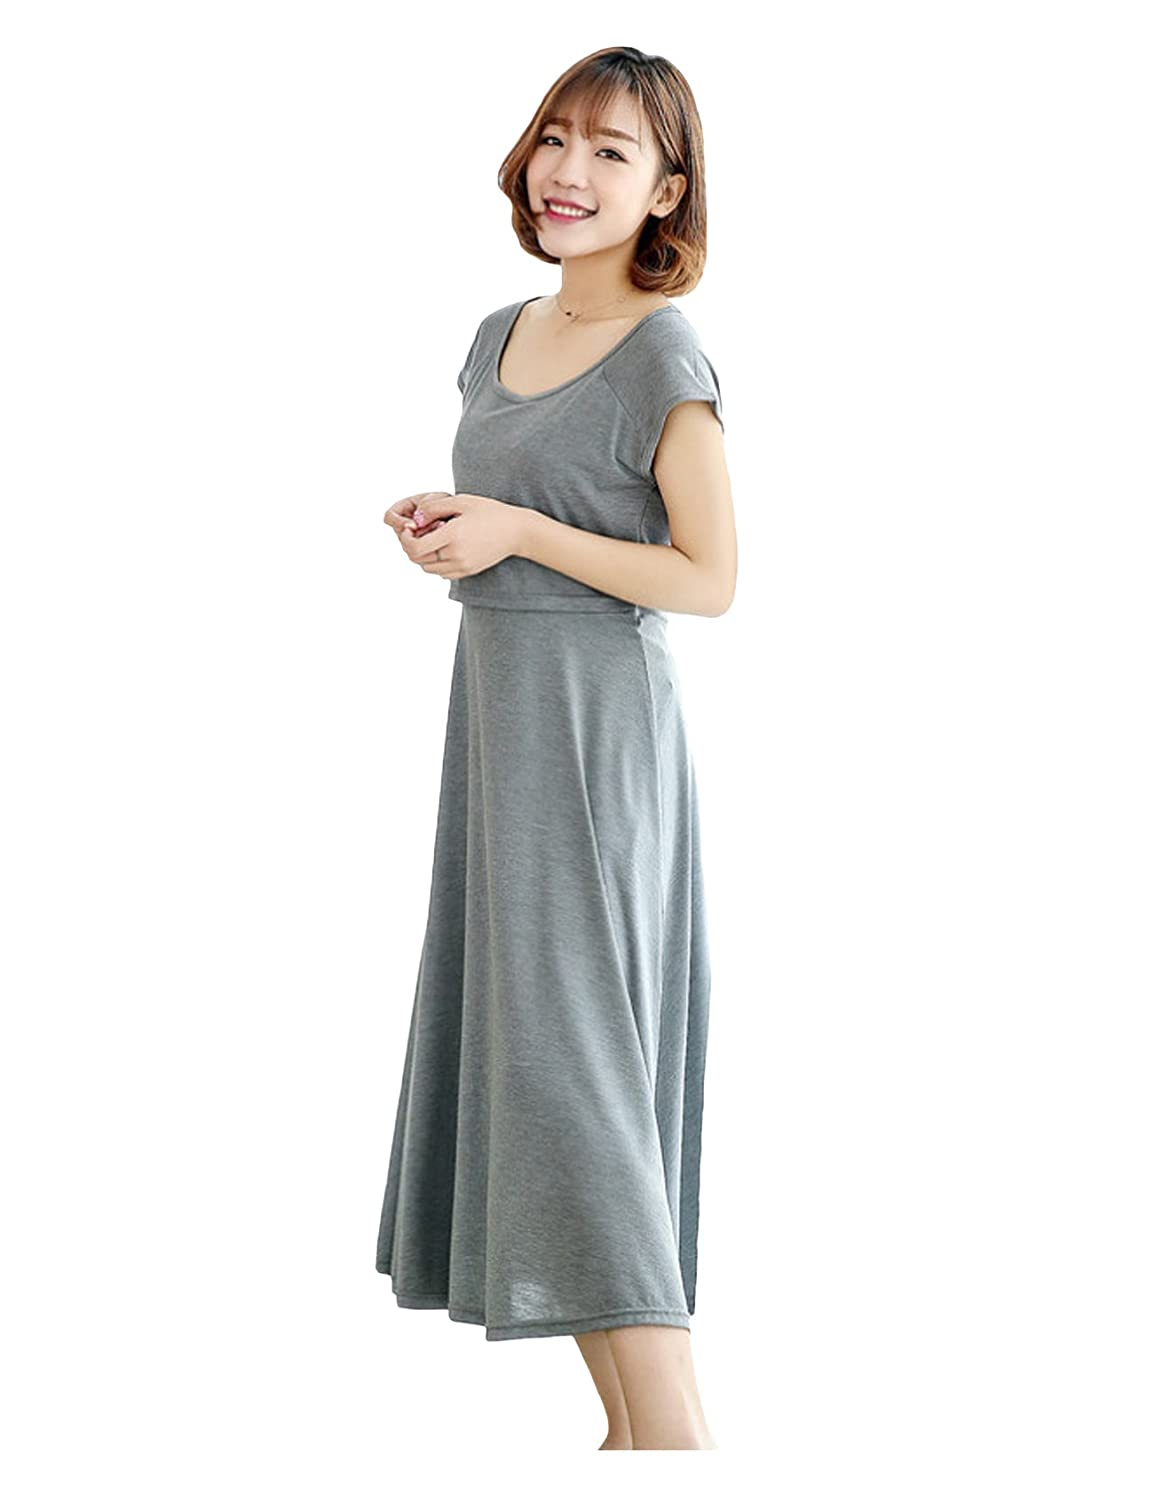 Bestgift Women's Crew Neck Layered Midi Nursing Dress BSGFDR1056